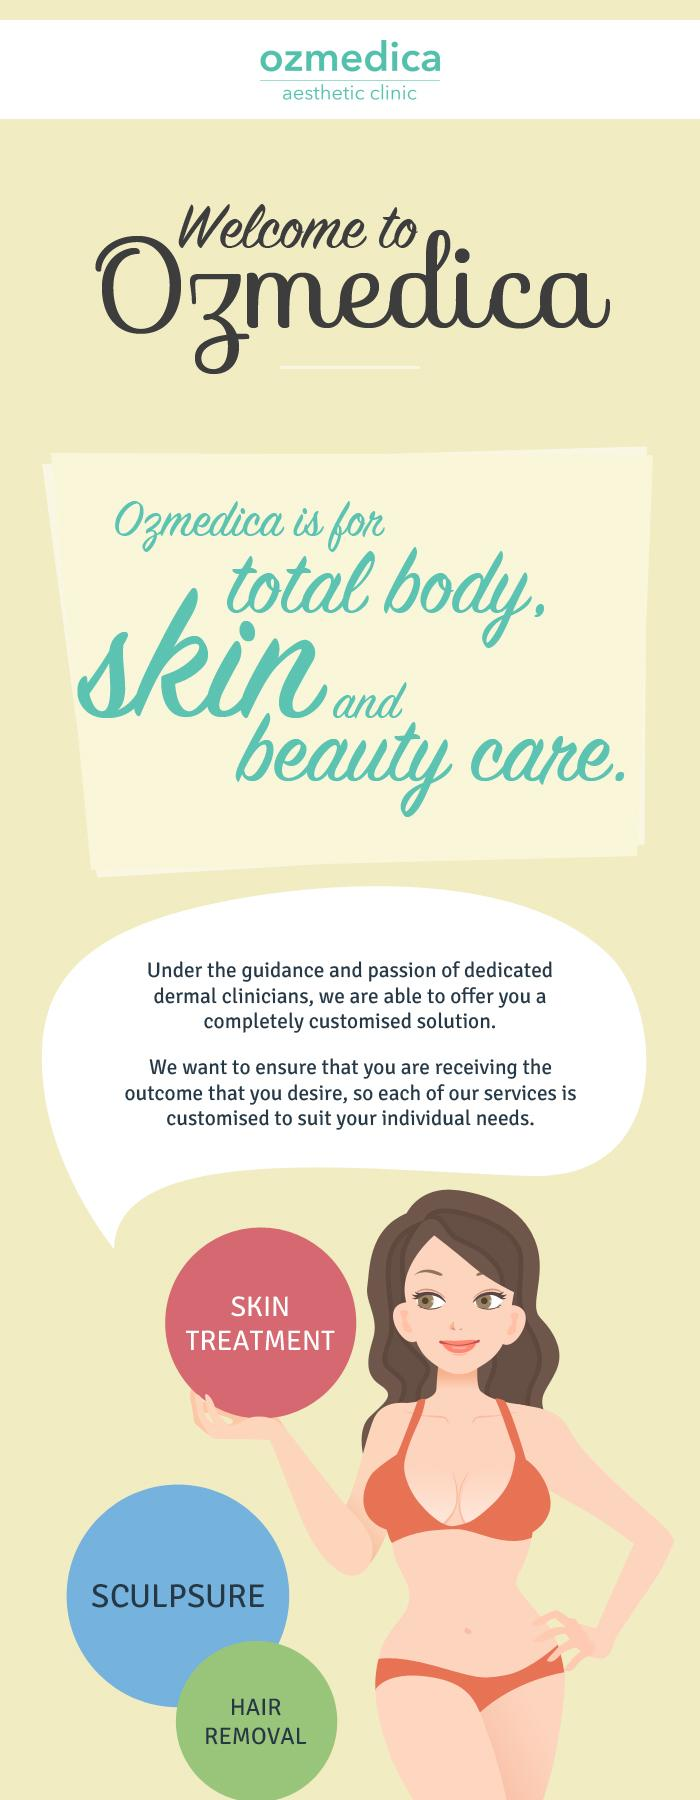 Get Total Body Skin and Beauty Care Services from Ozmedica Aesthetic Clinic